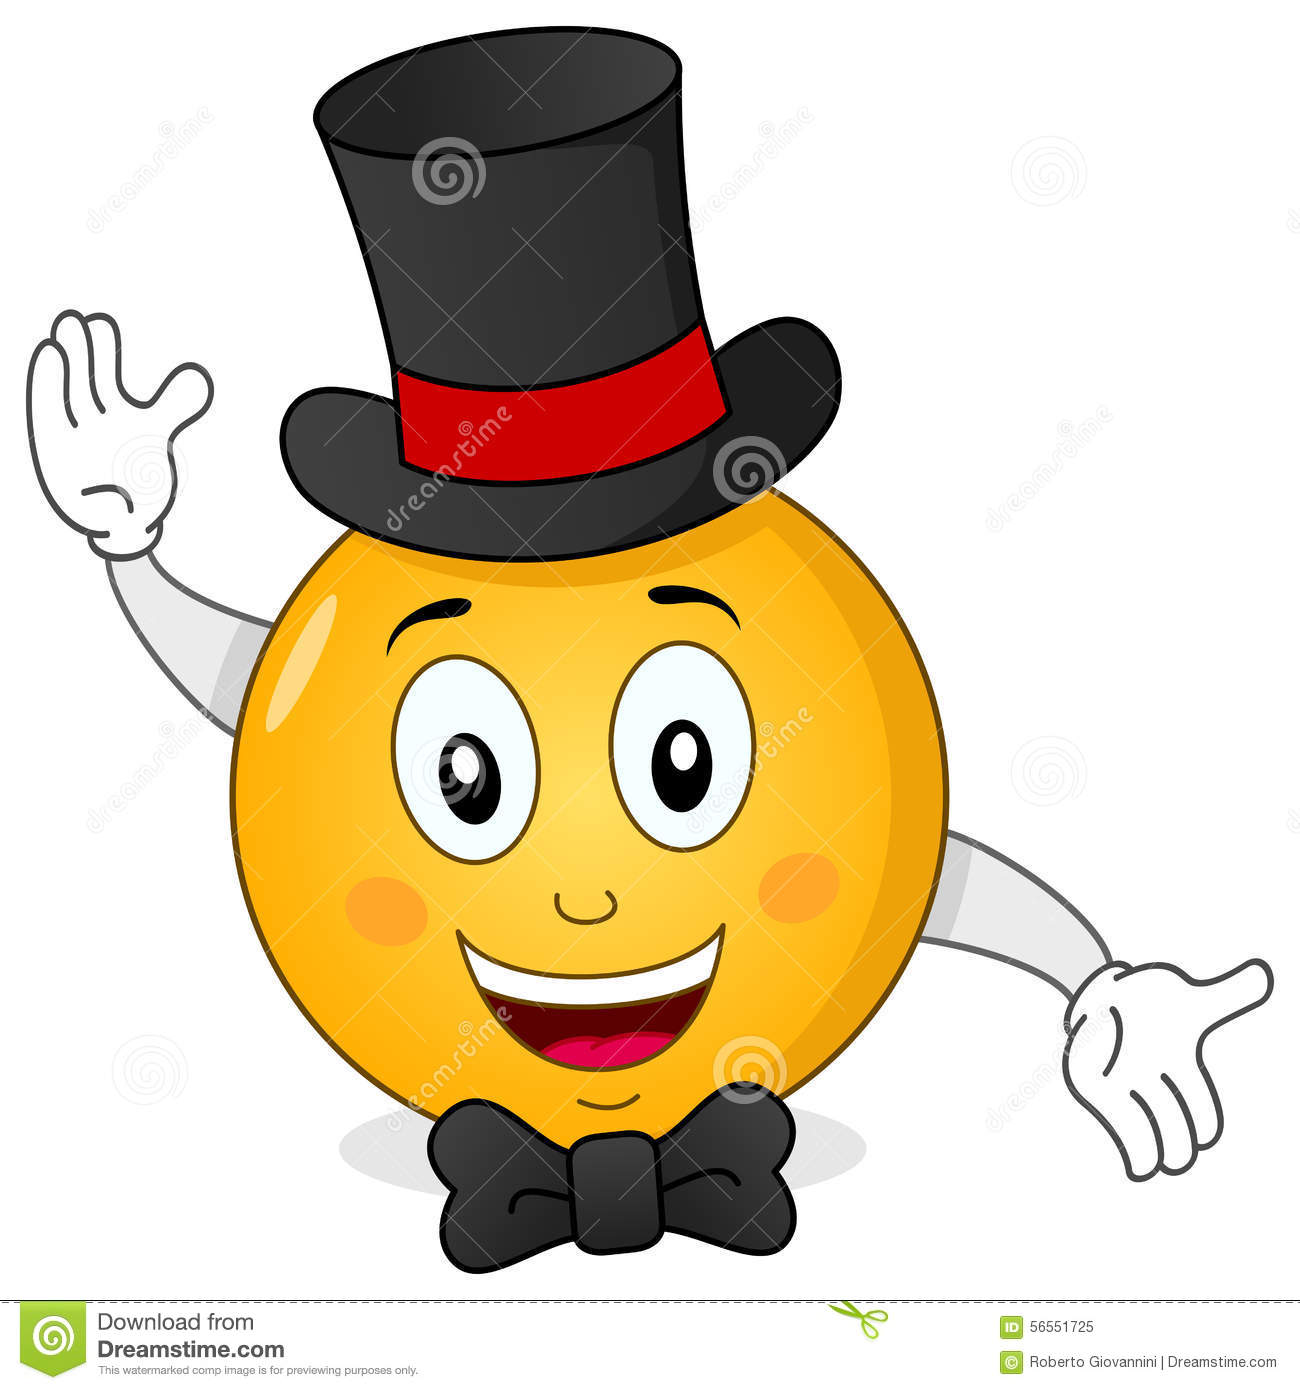 ... black top hat and a bow tie smiling, isolated on white background. Eps